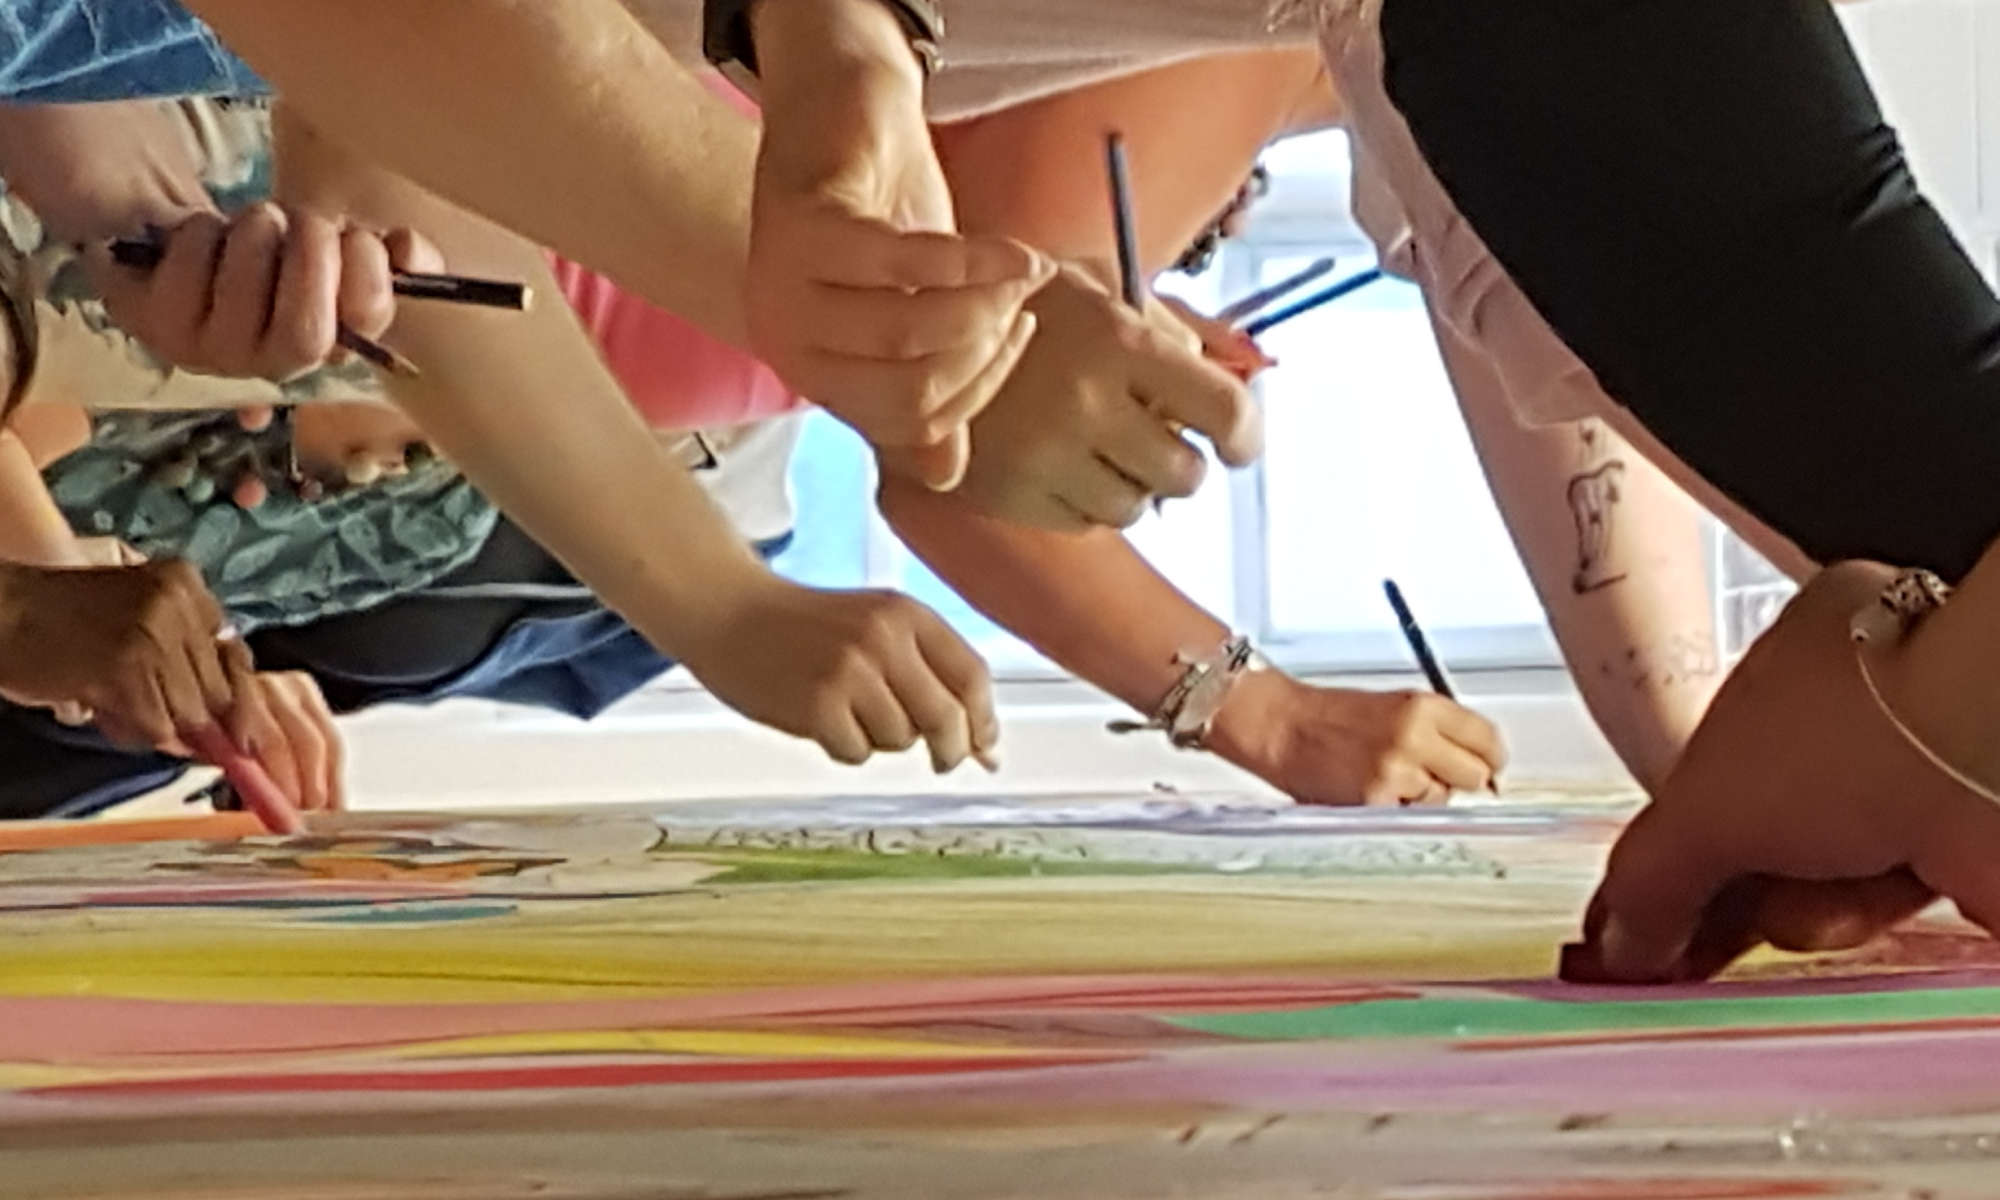 Image of many hands cocreating a collaborative 8gate art piece